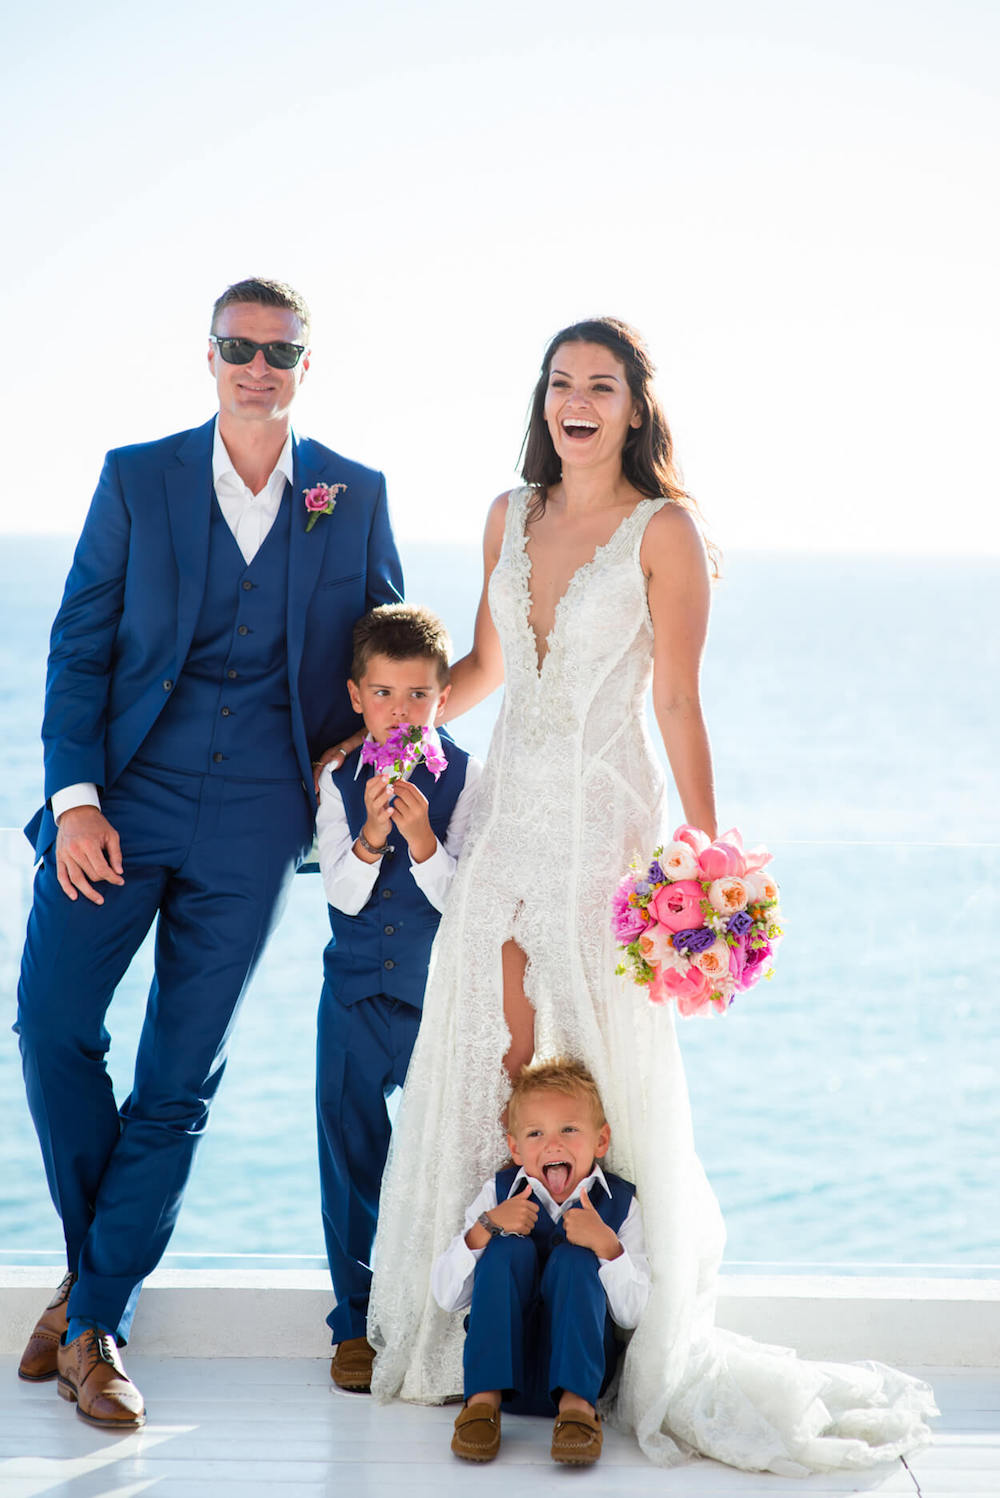 Colourful flowers wedding bouquet bride groom family kids beach venue sunset view Galia Lahav